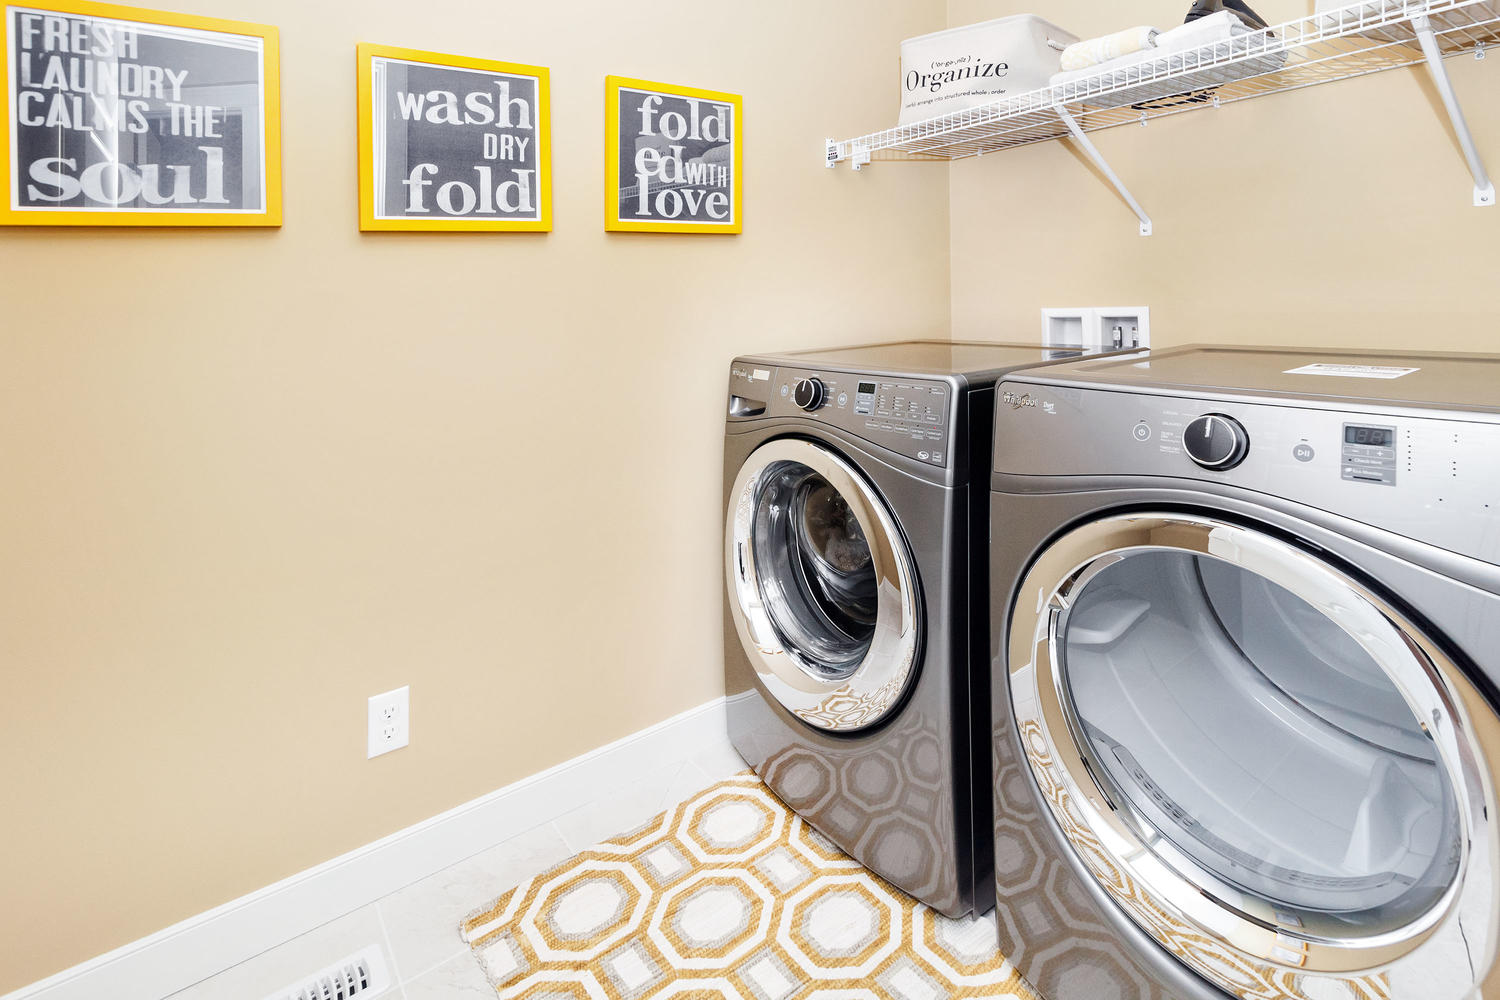 pastel yellow wall feature in the laundry room of a pacesetter front drive home.